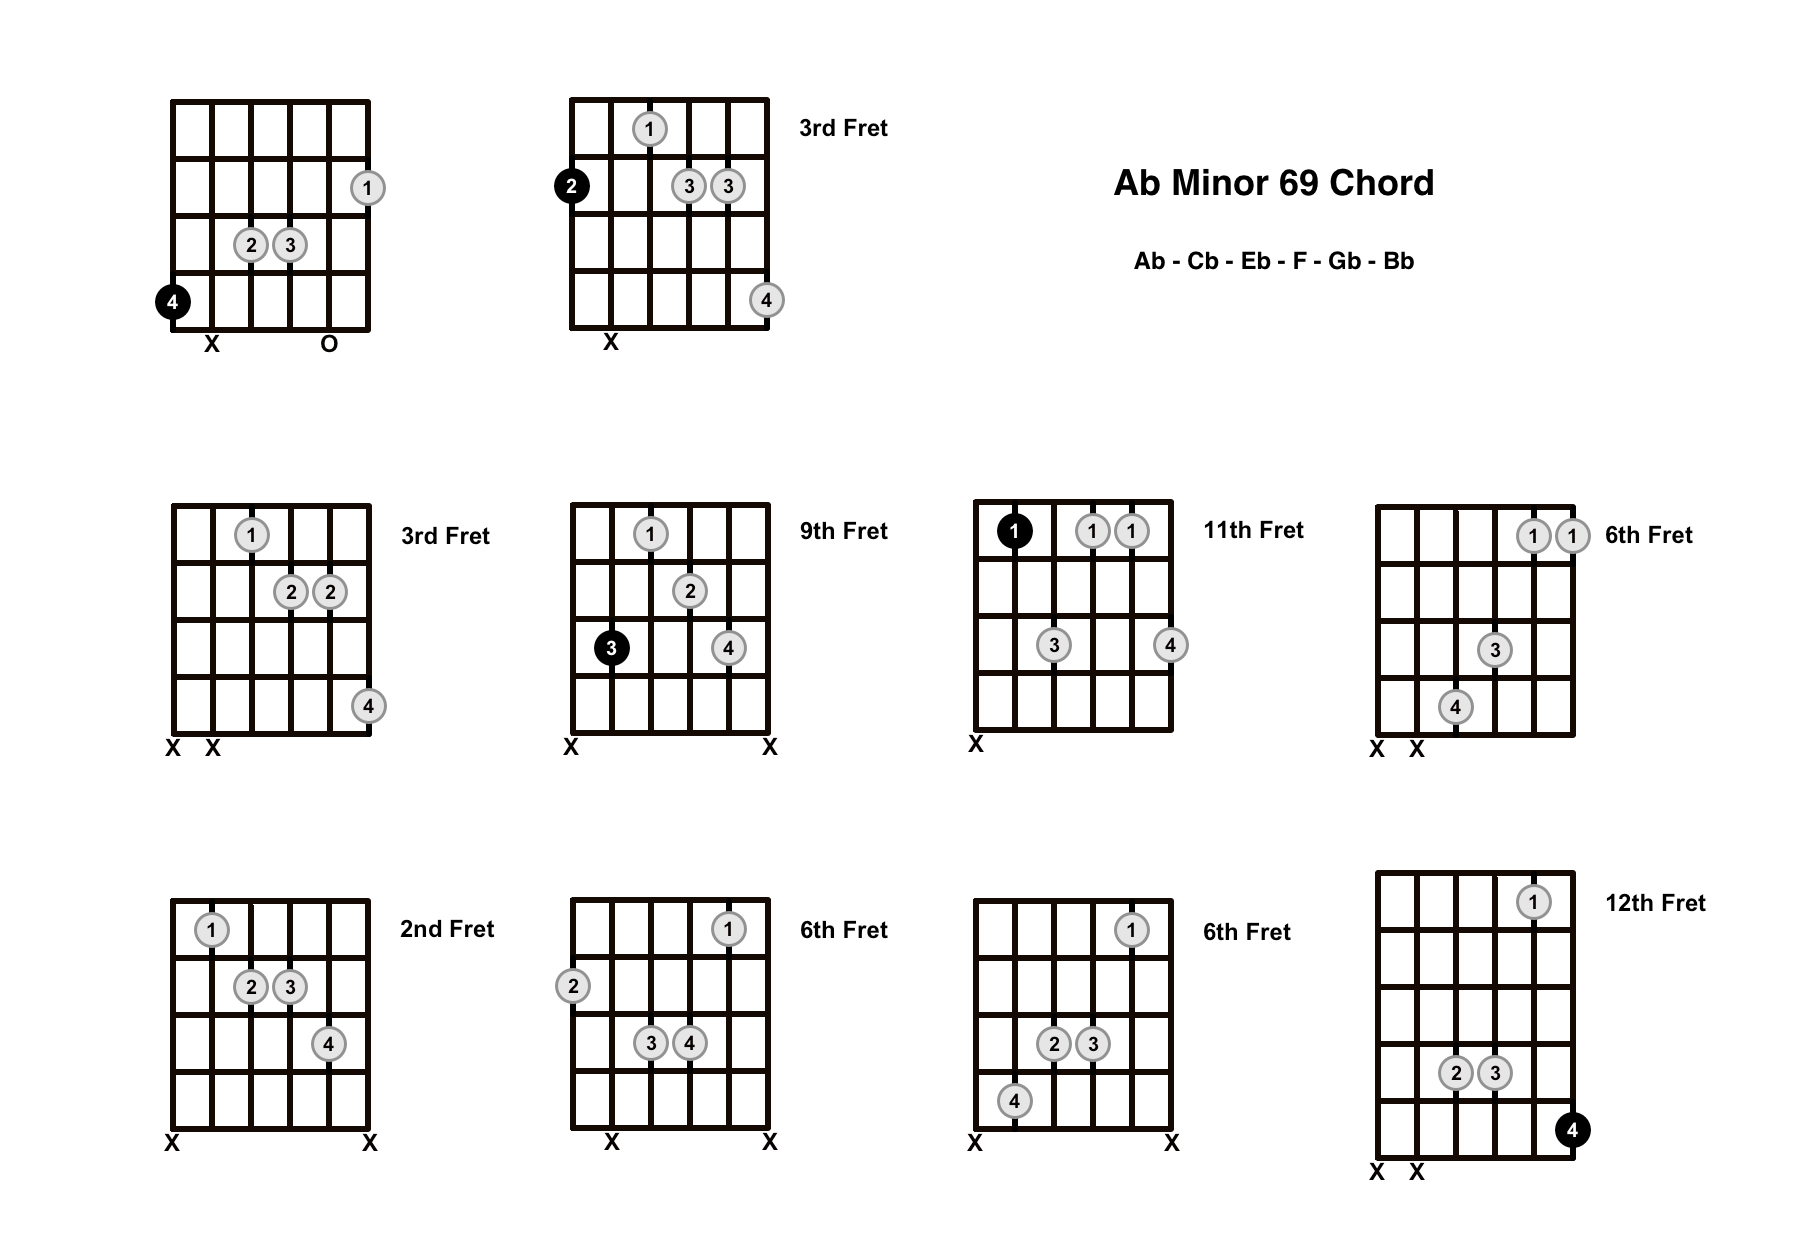 Abm69 Chord On The Guitar (A Flat Minor 69) – Diagrams, Finger Positions and Theory